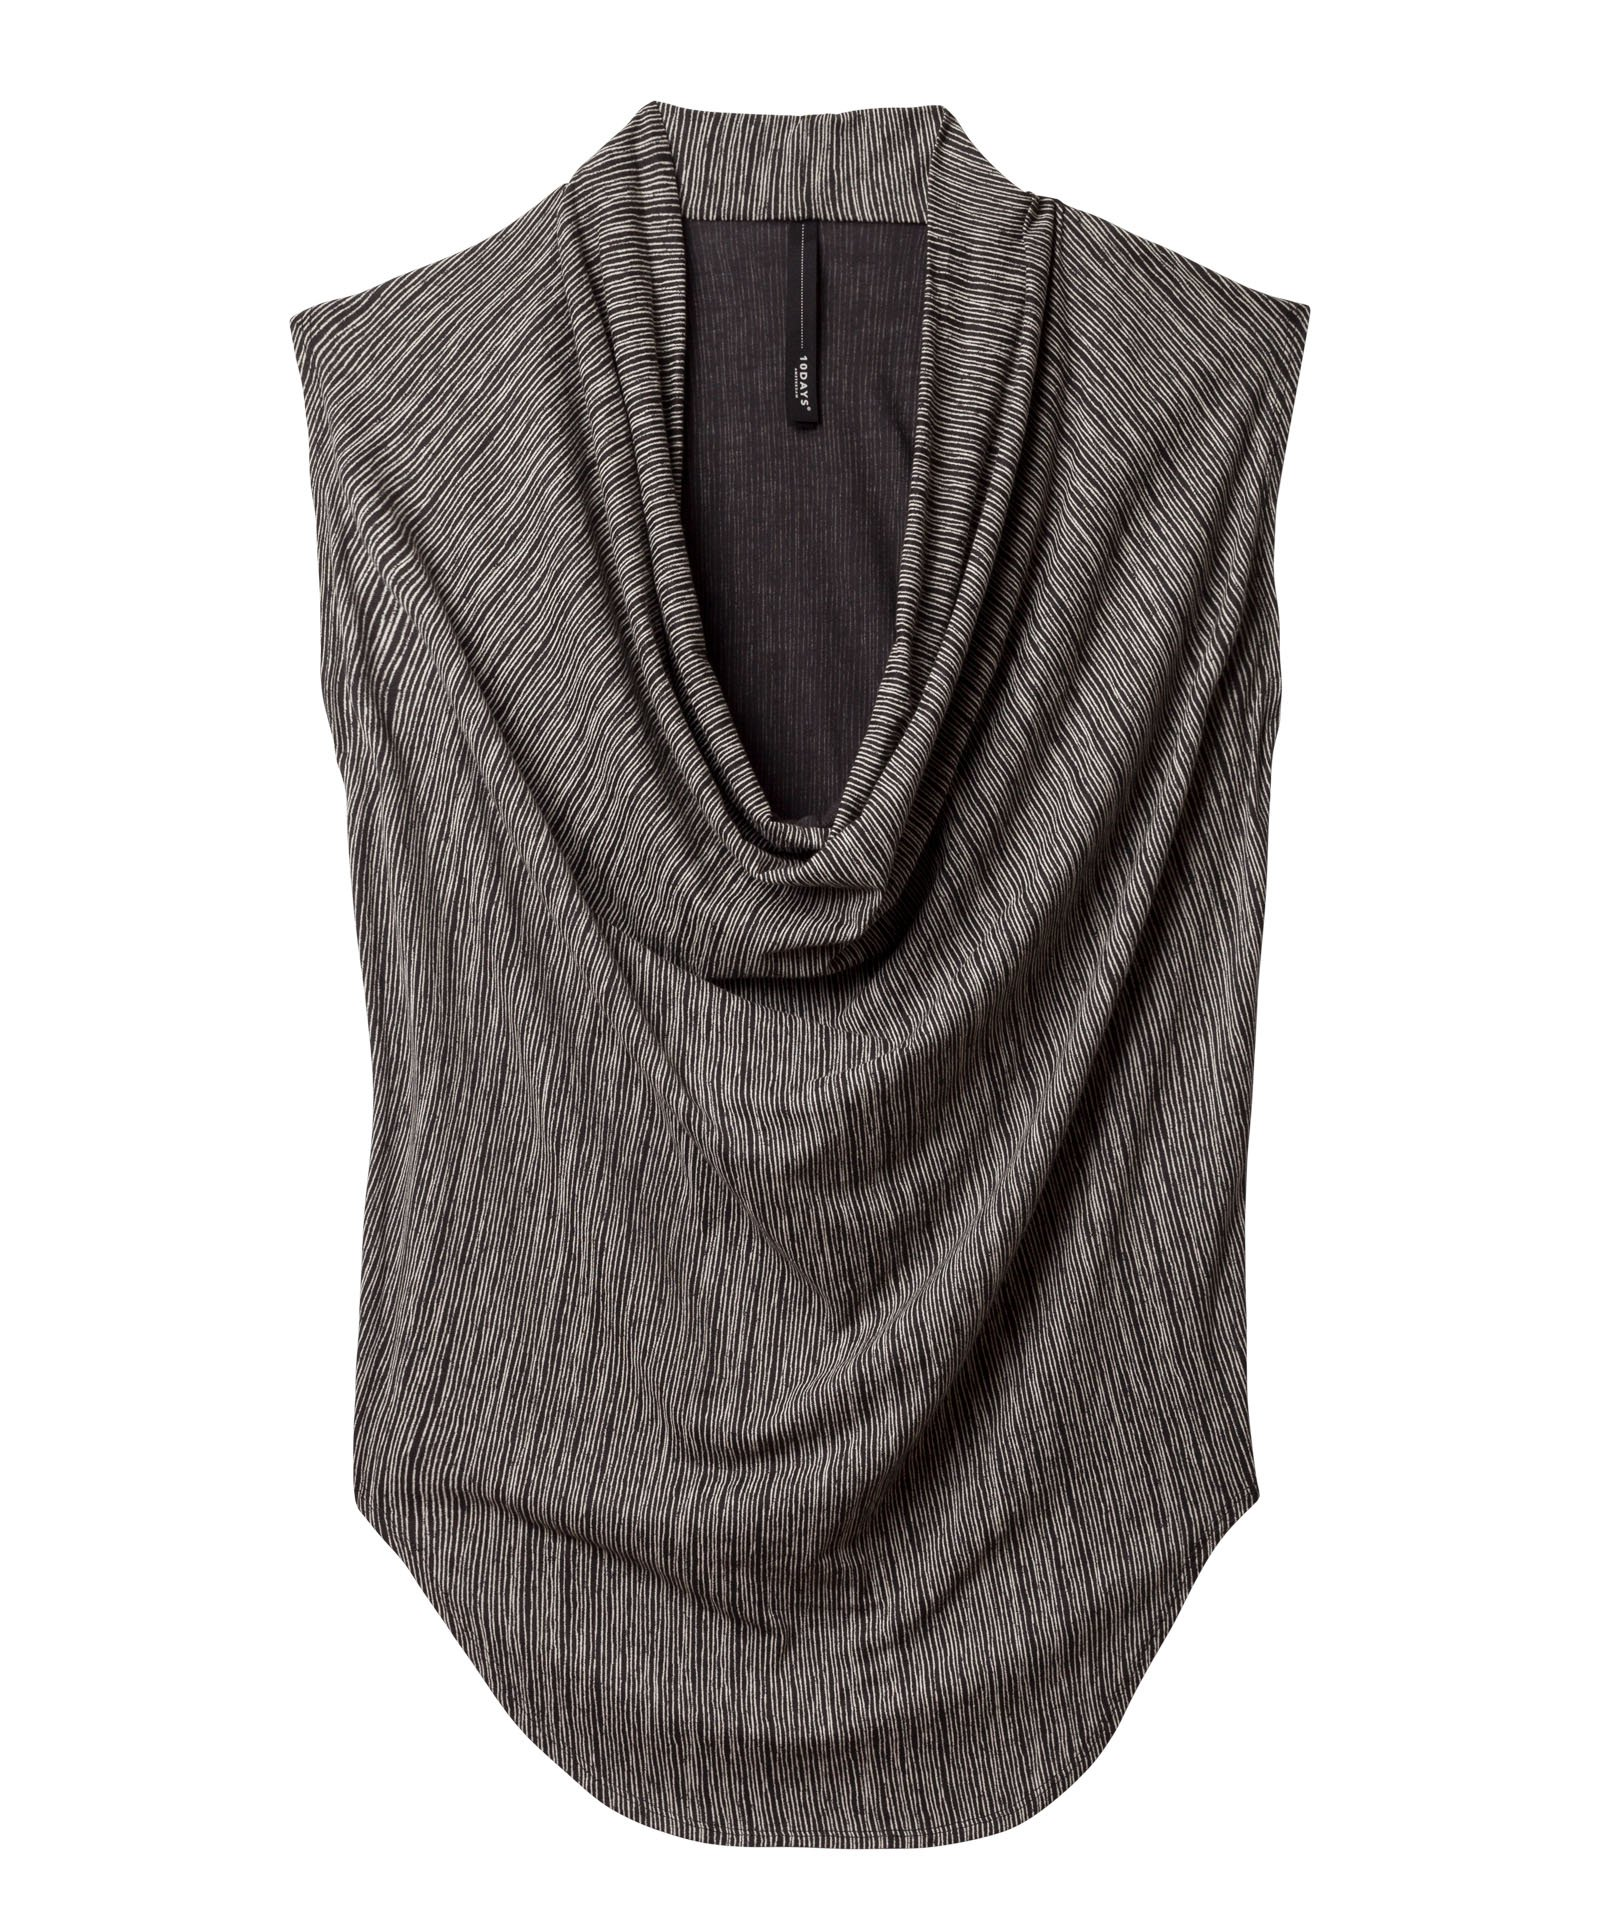 10Days charcoal waterfall top thin stripe